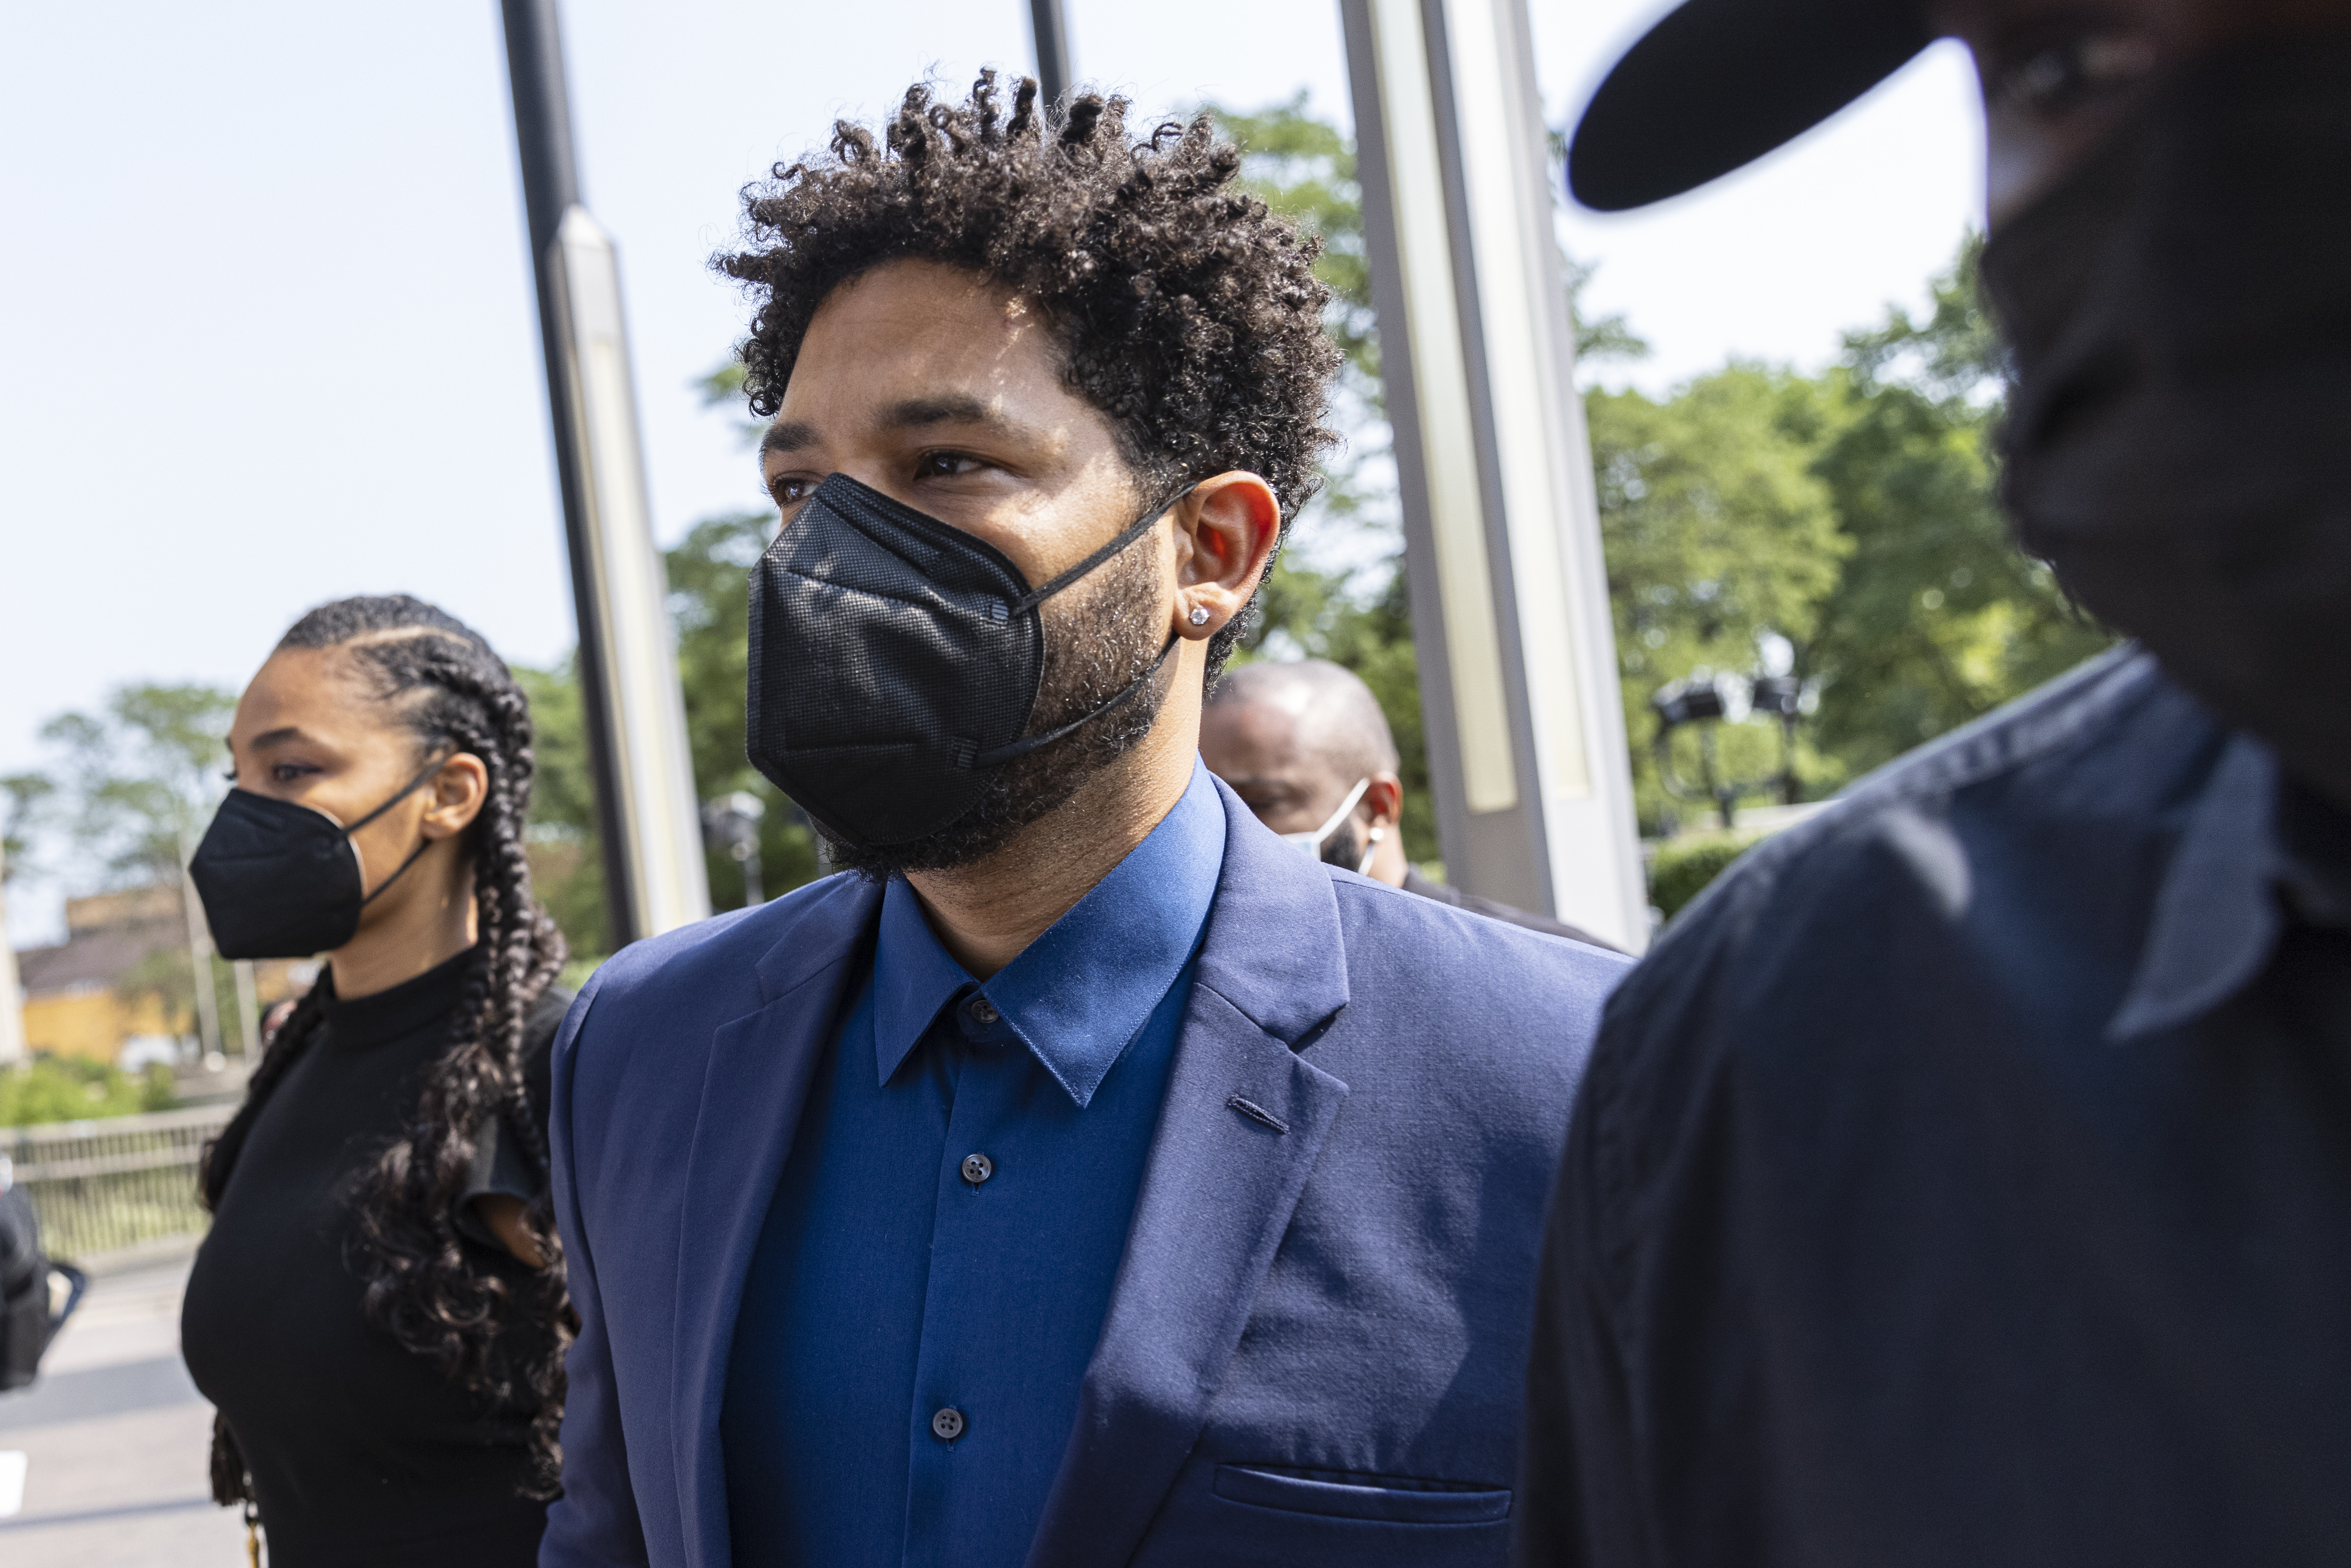 Jussie Smollett arrives Wednesday morning at the Leighton Criminal Courthouse in Little Village.